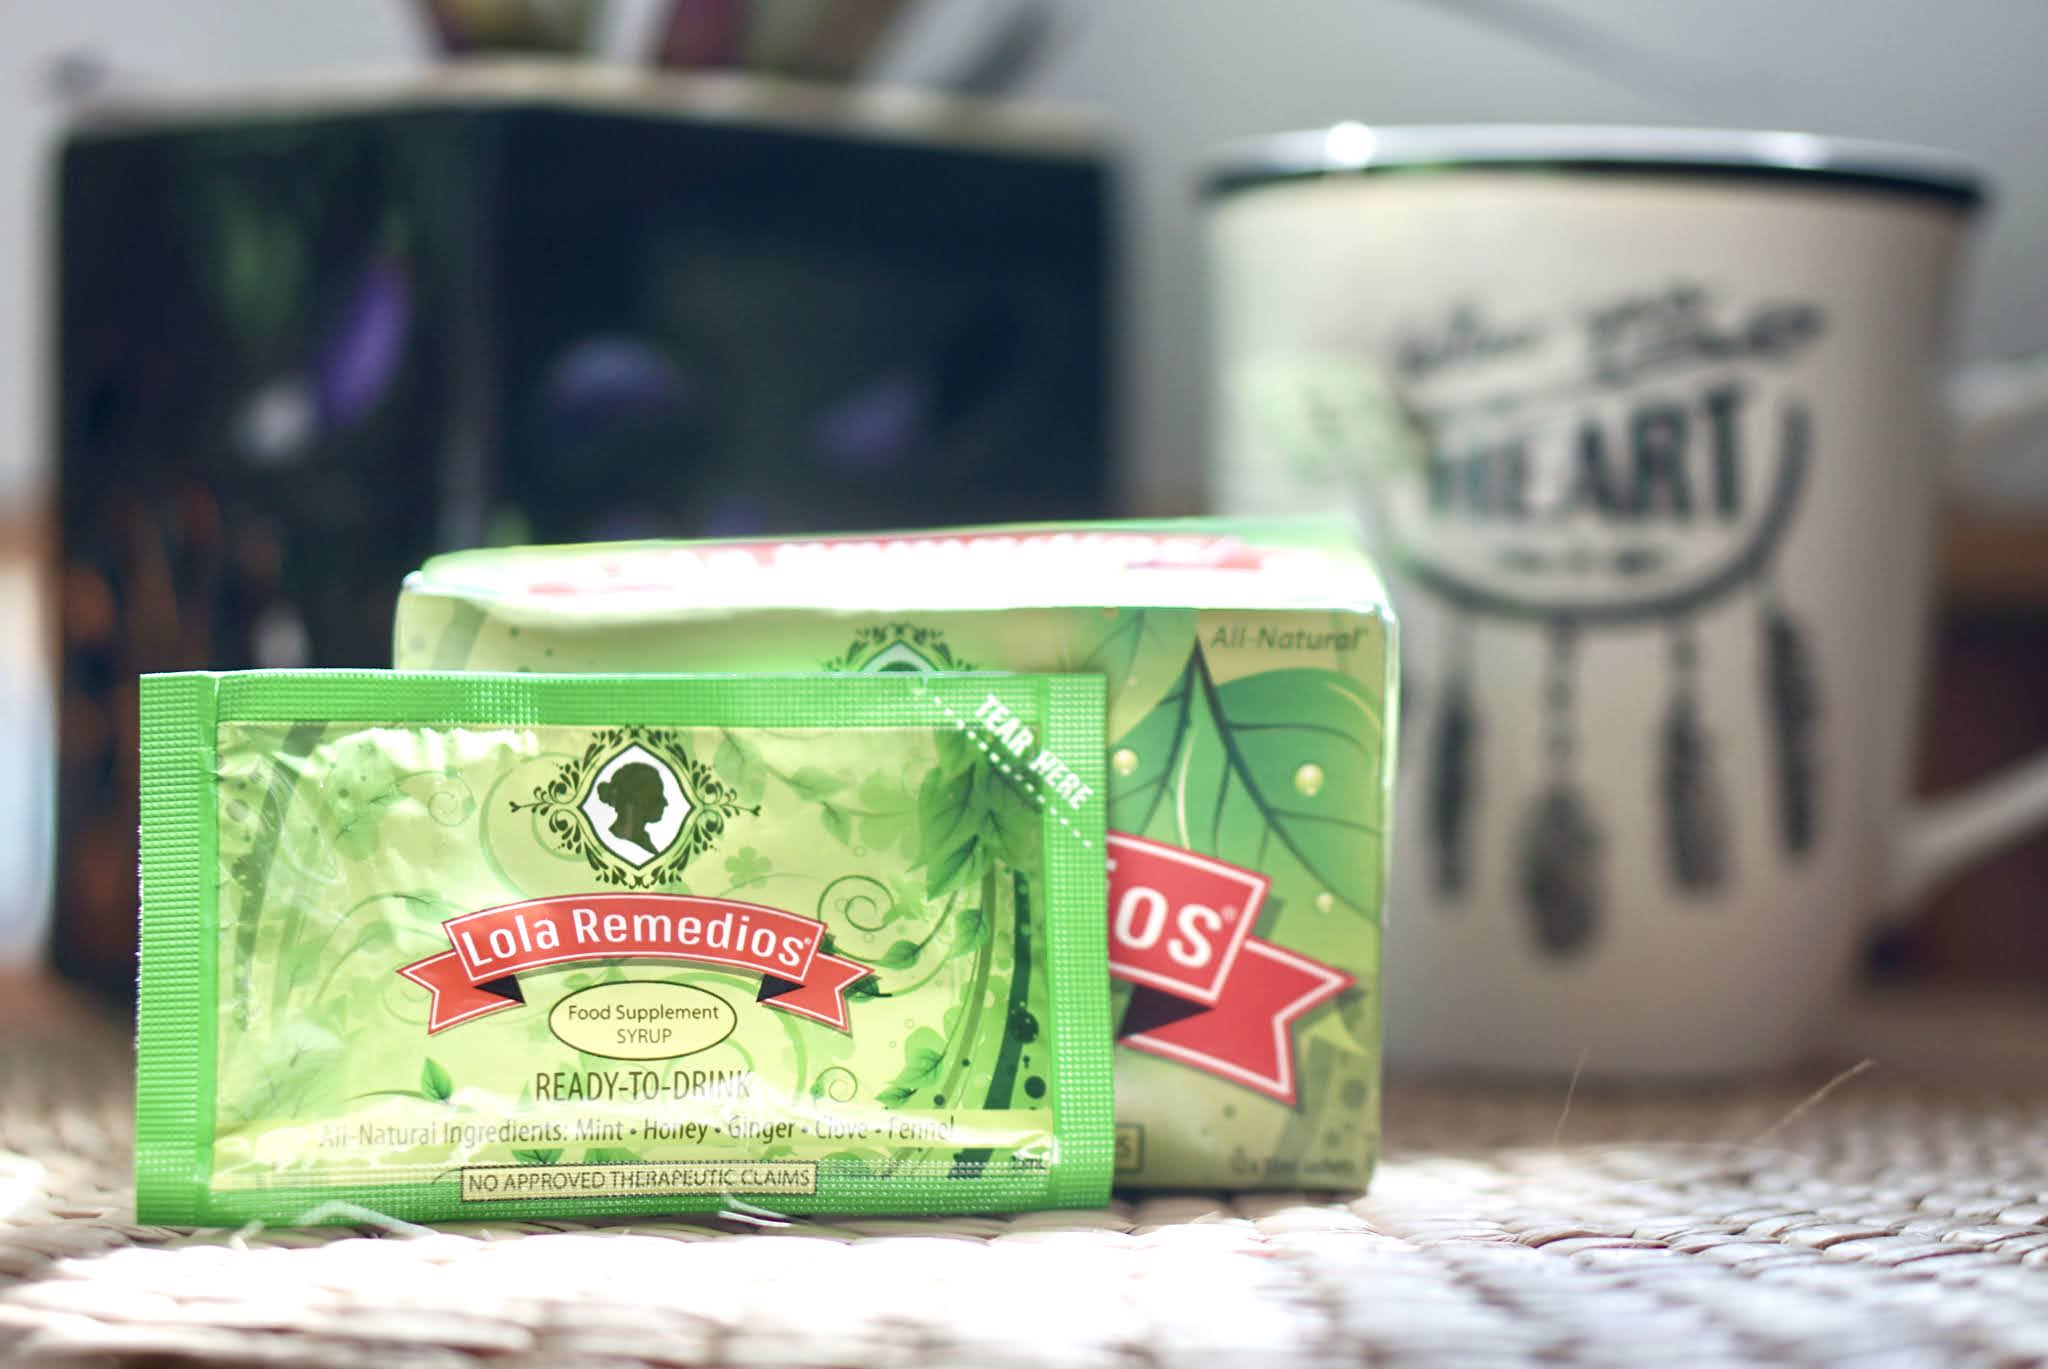 TLC with Lola Remedios and reasons to love it even more!, lamig remedy, lola remedios